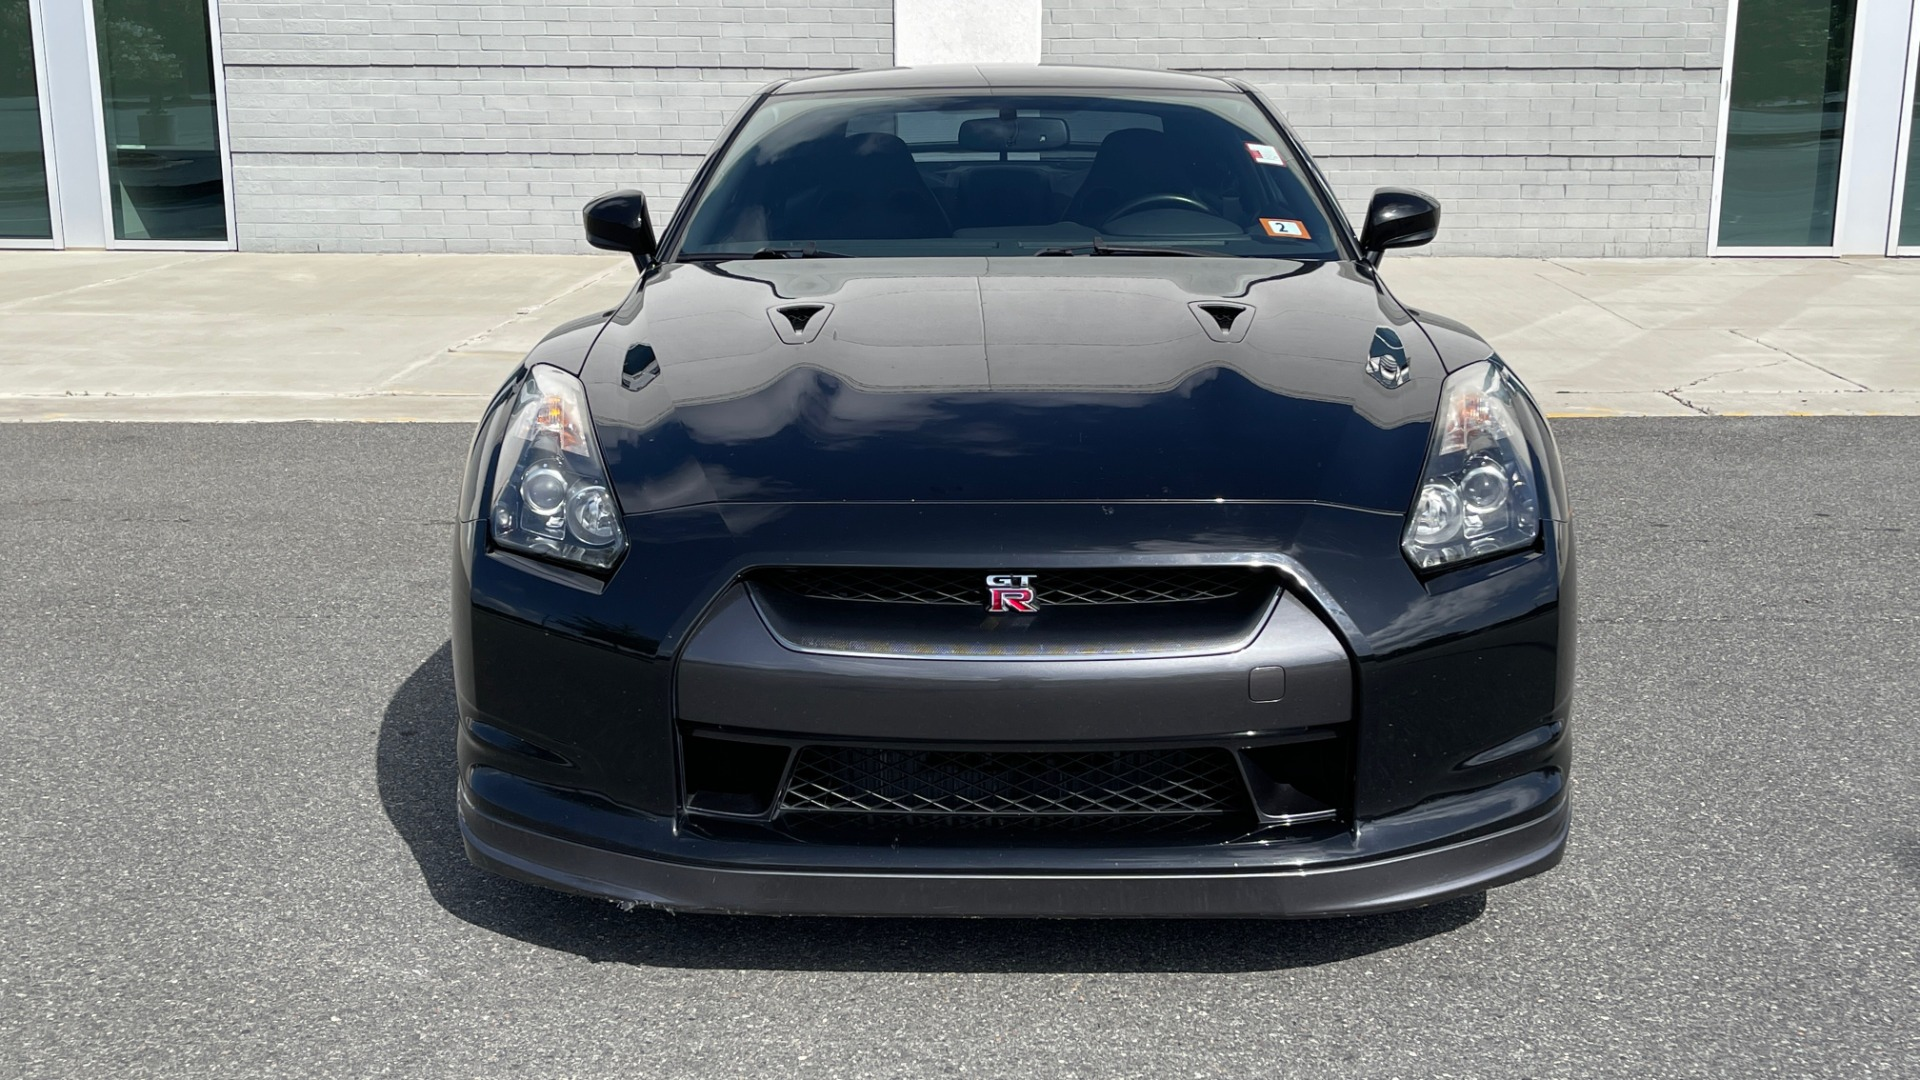 Used 2009 Nissan GT-R PREMIUM COUPE / AWD / TT 3.8L V6 / NAV / BOSE / BREMBO for sale $57,599 at Formula Imports in Charlotte NC 28227 8